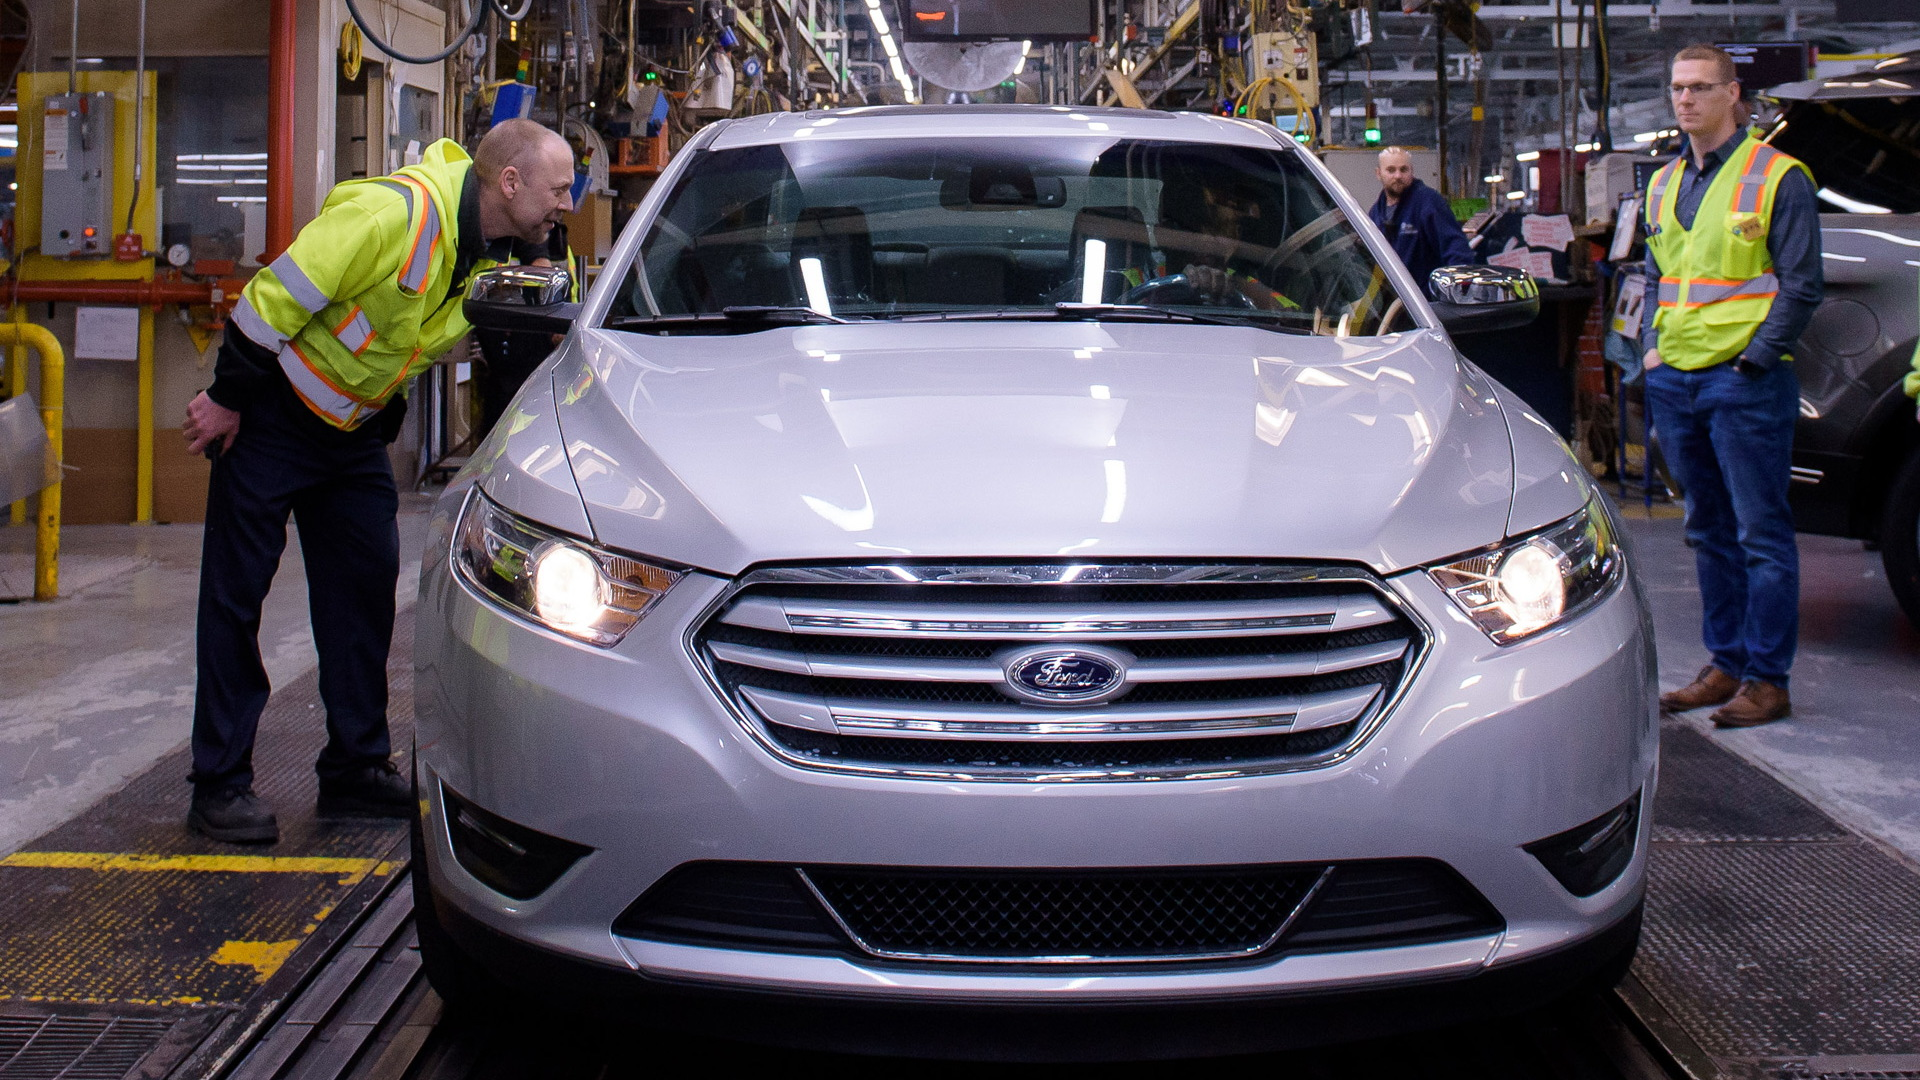 Ford builds last Taurus in North America on March 1, 2019